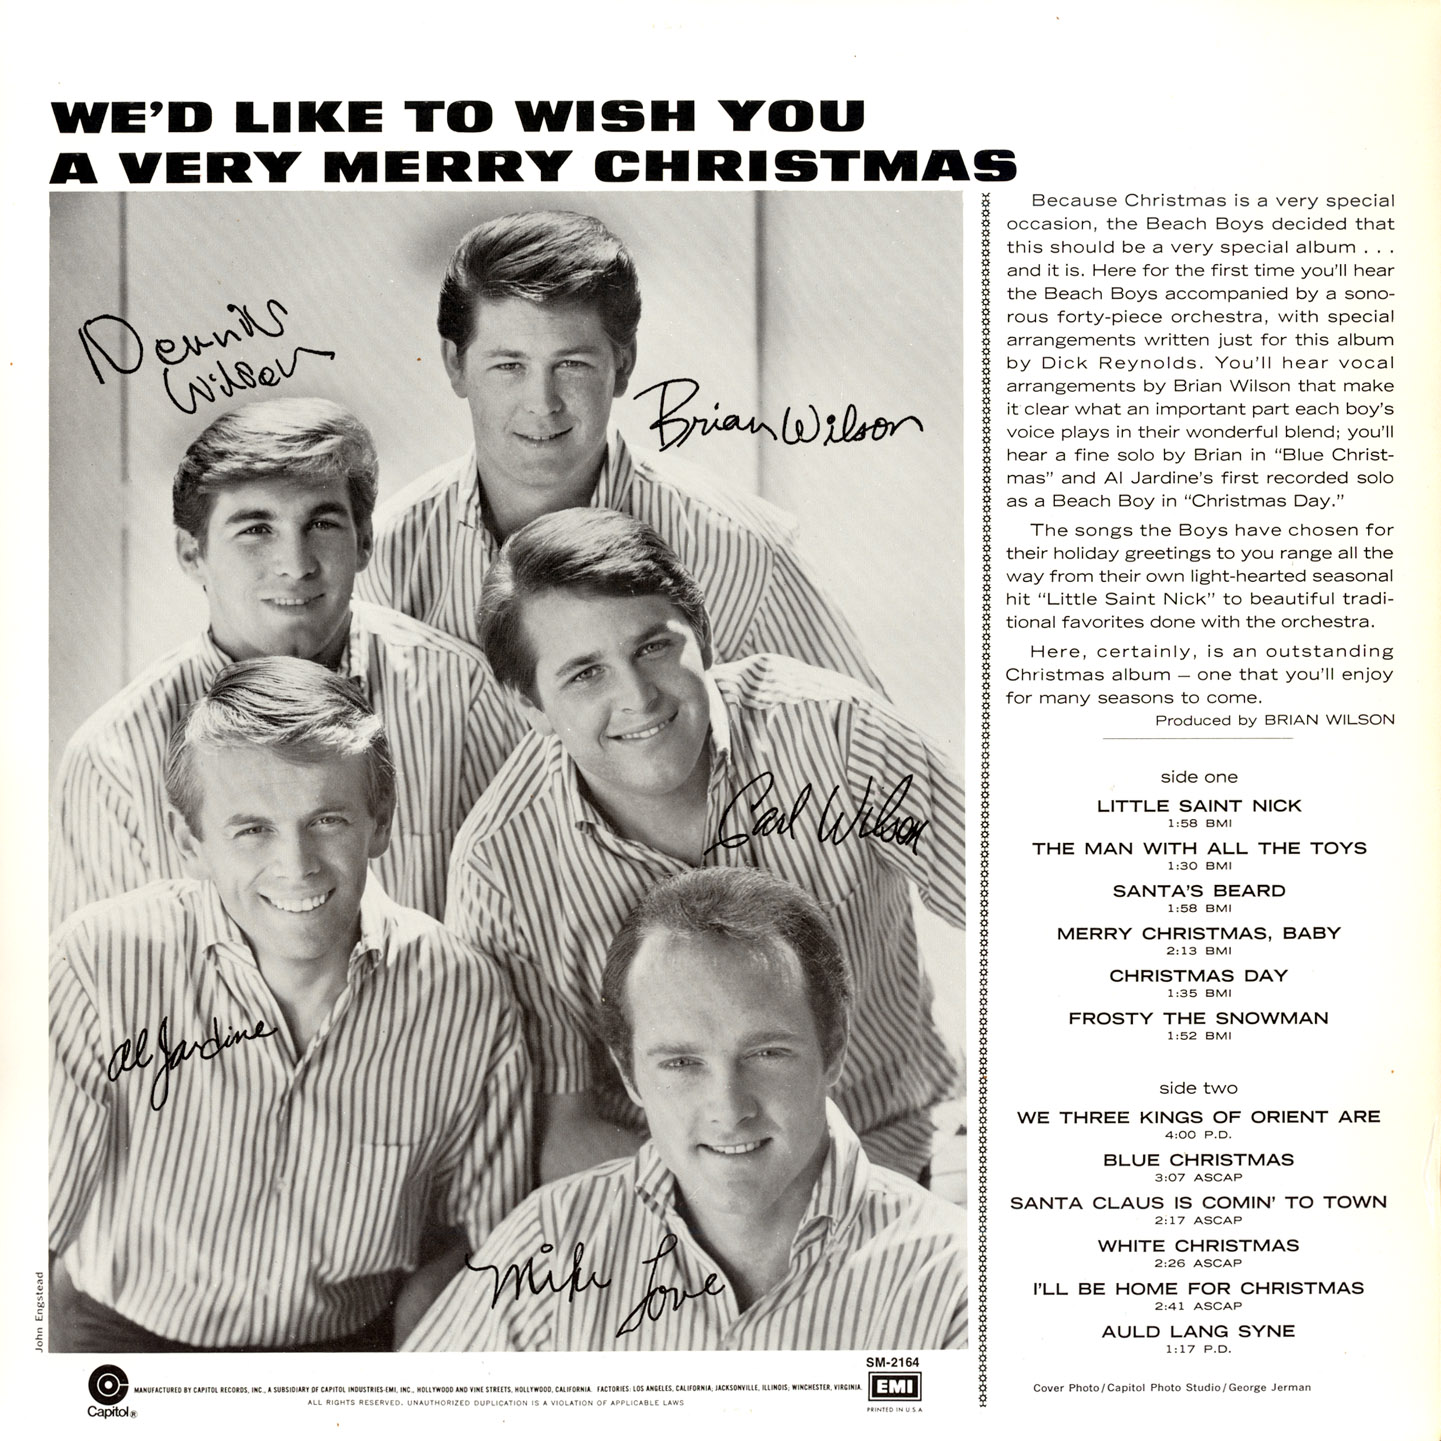 beach boys christmas album 1964 - Beach Boys Christmas